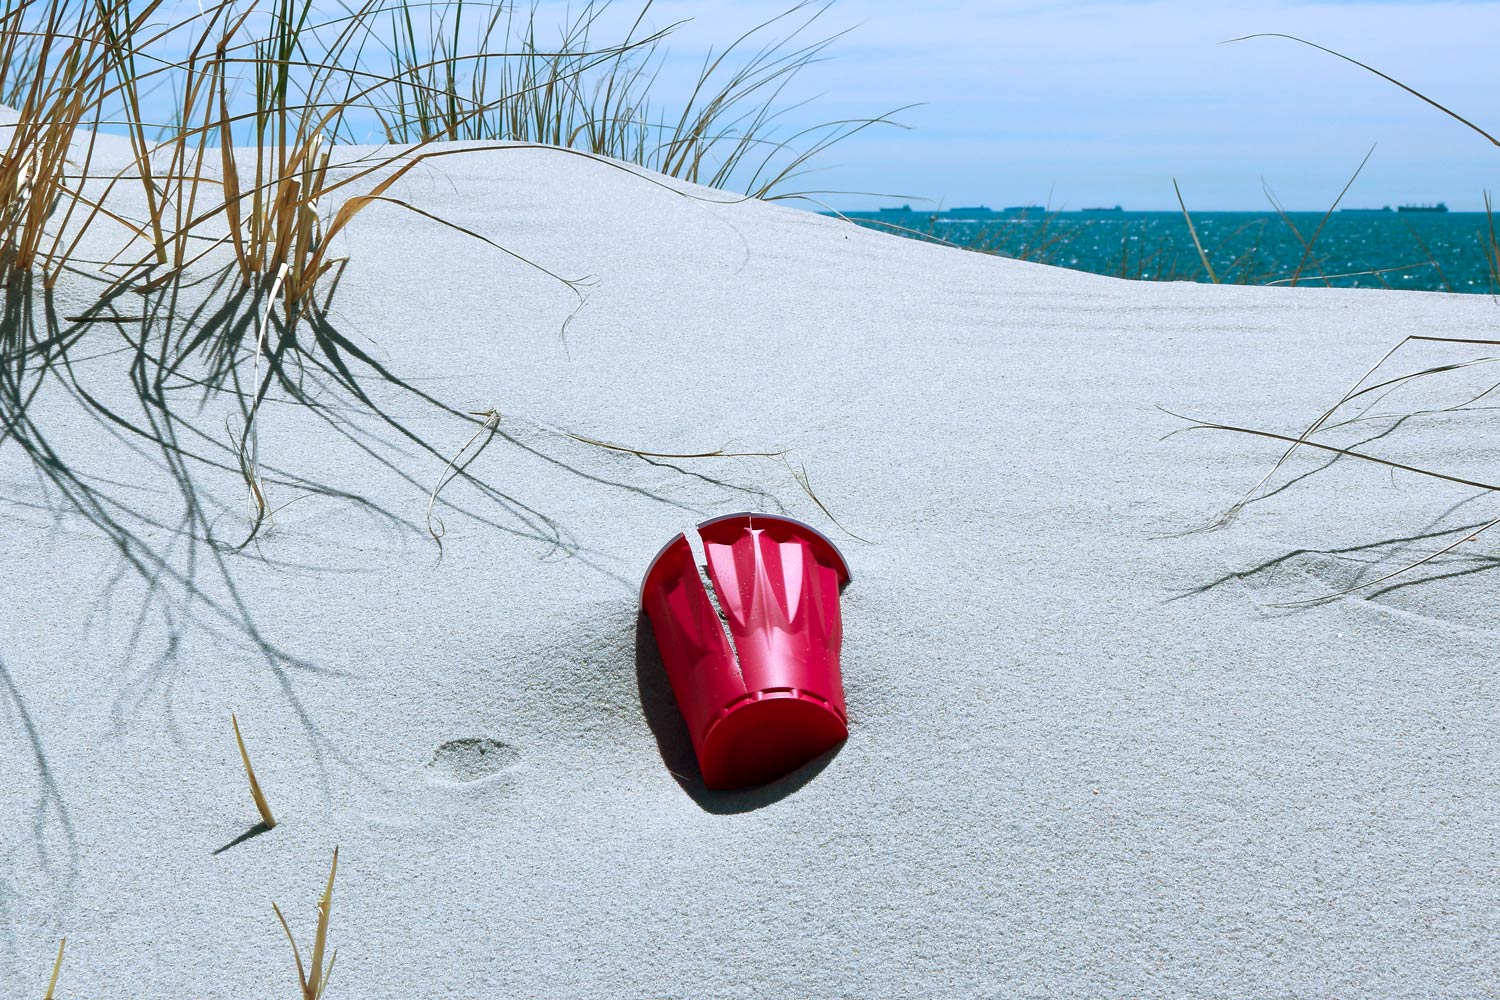 Photo of an old red plastic Solo cup on the beach.